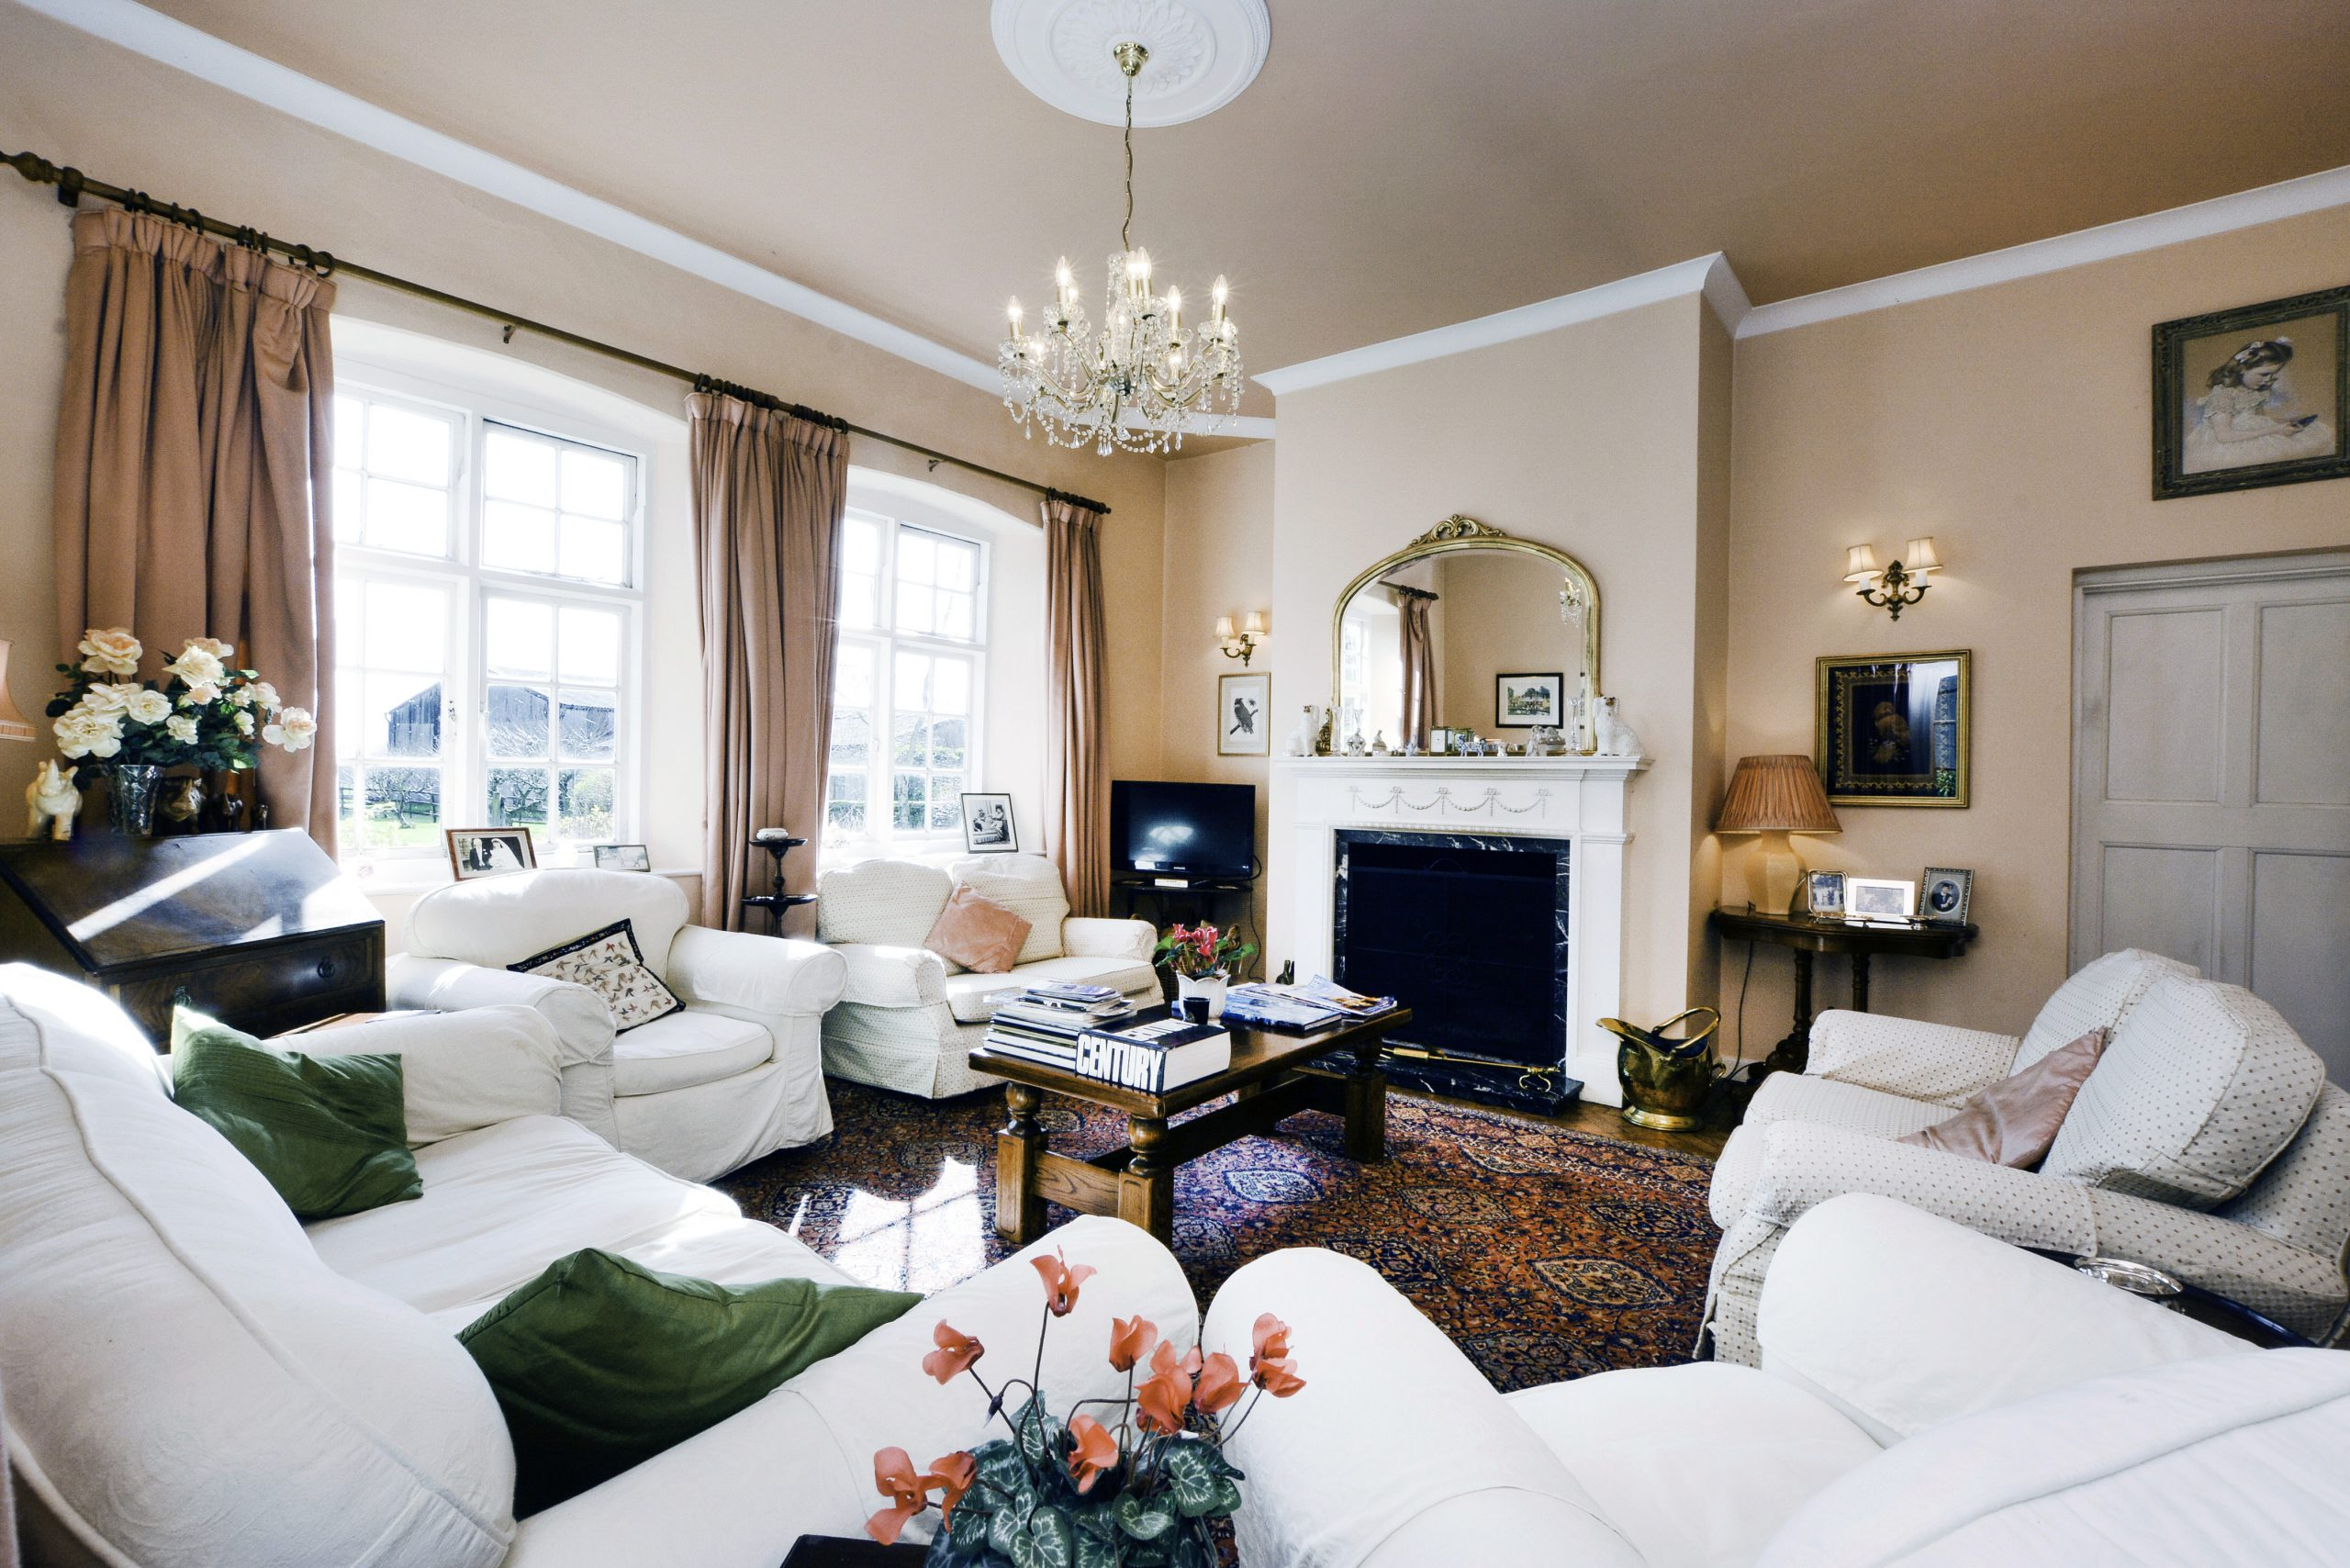 The Old School Bed and Breakfast Drawing Room